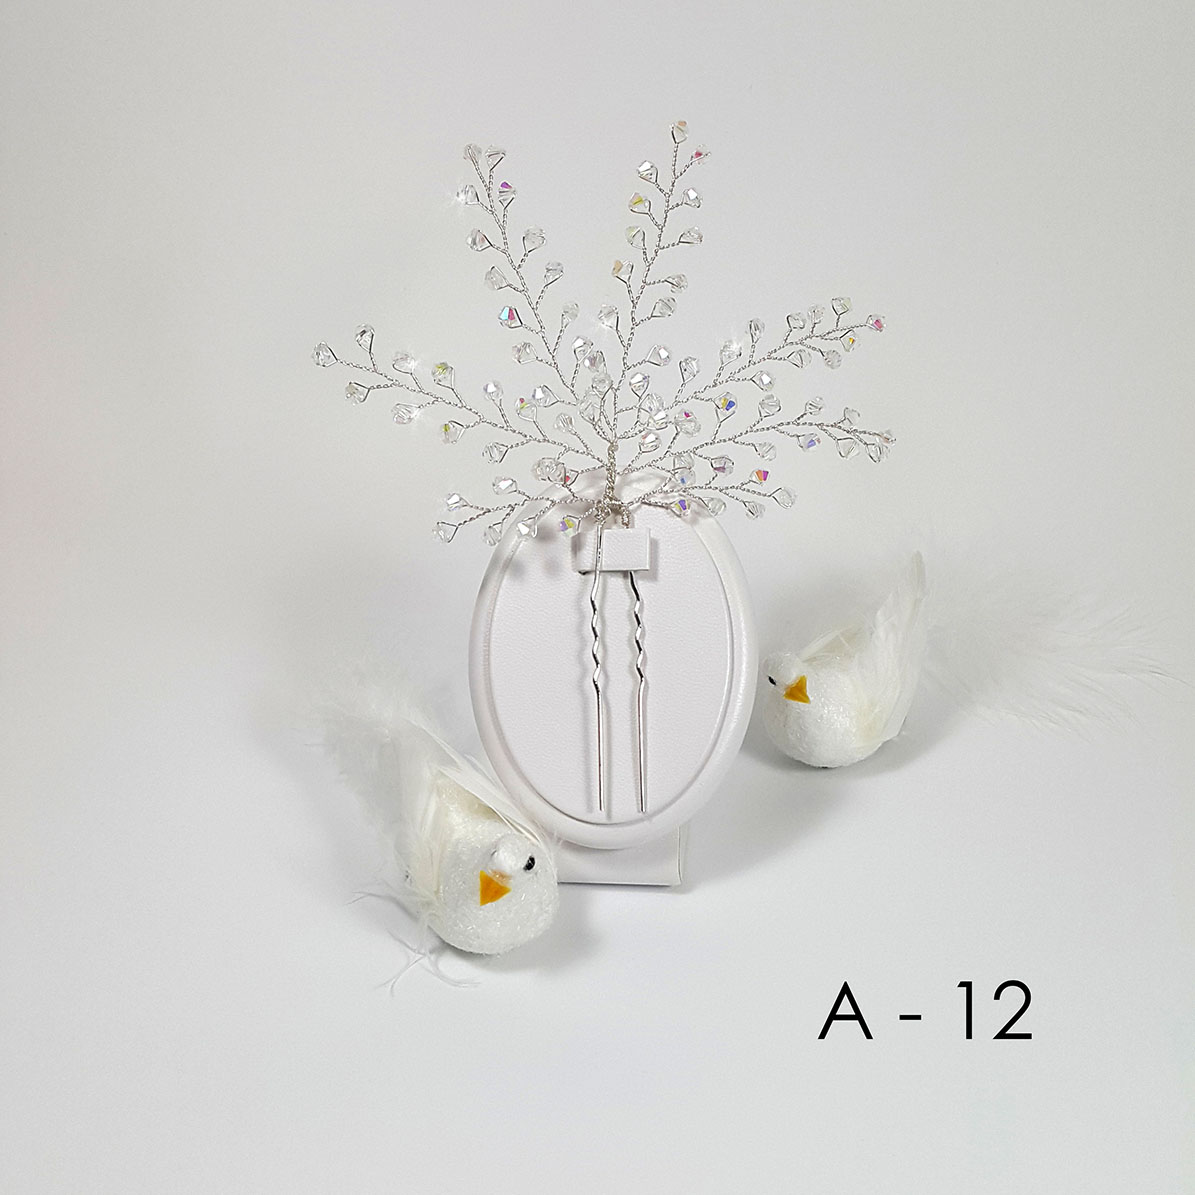 Accessory A 12 for the bride Foto 1